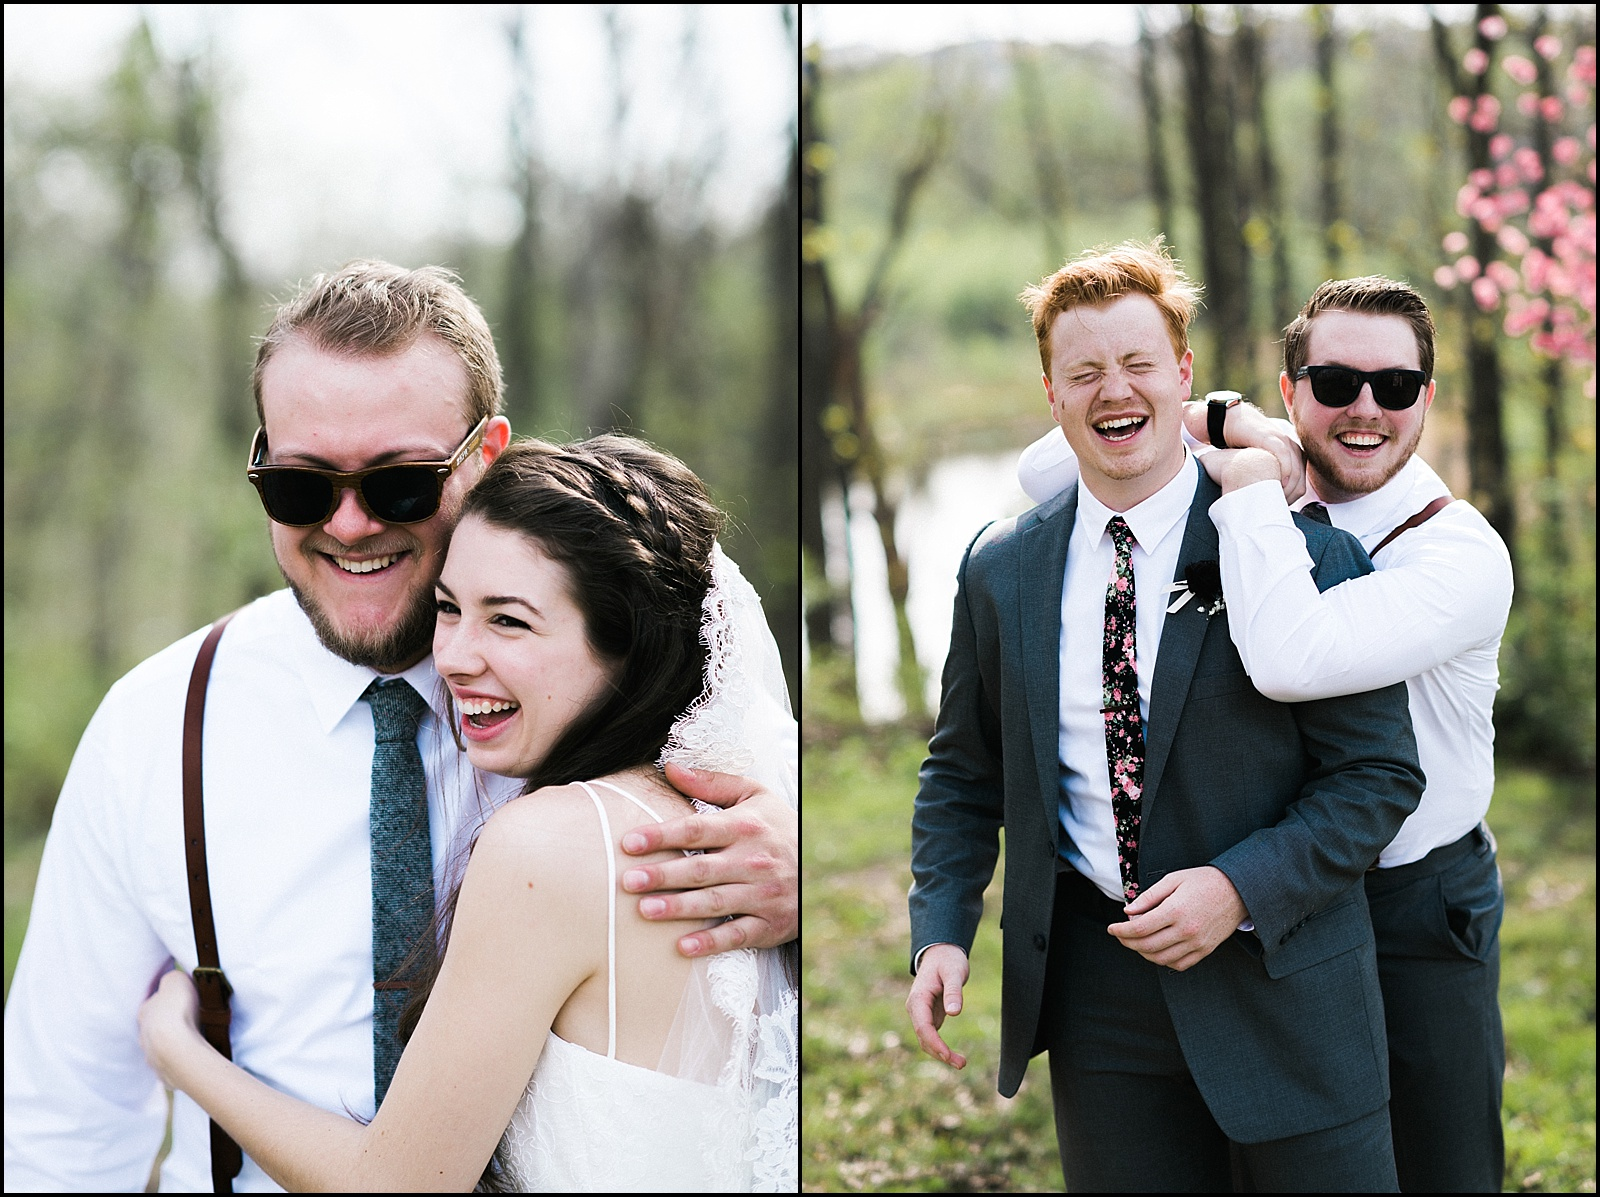 Bridal party candid pictures